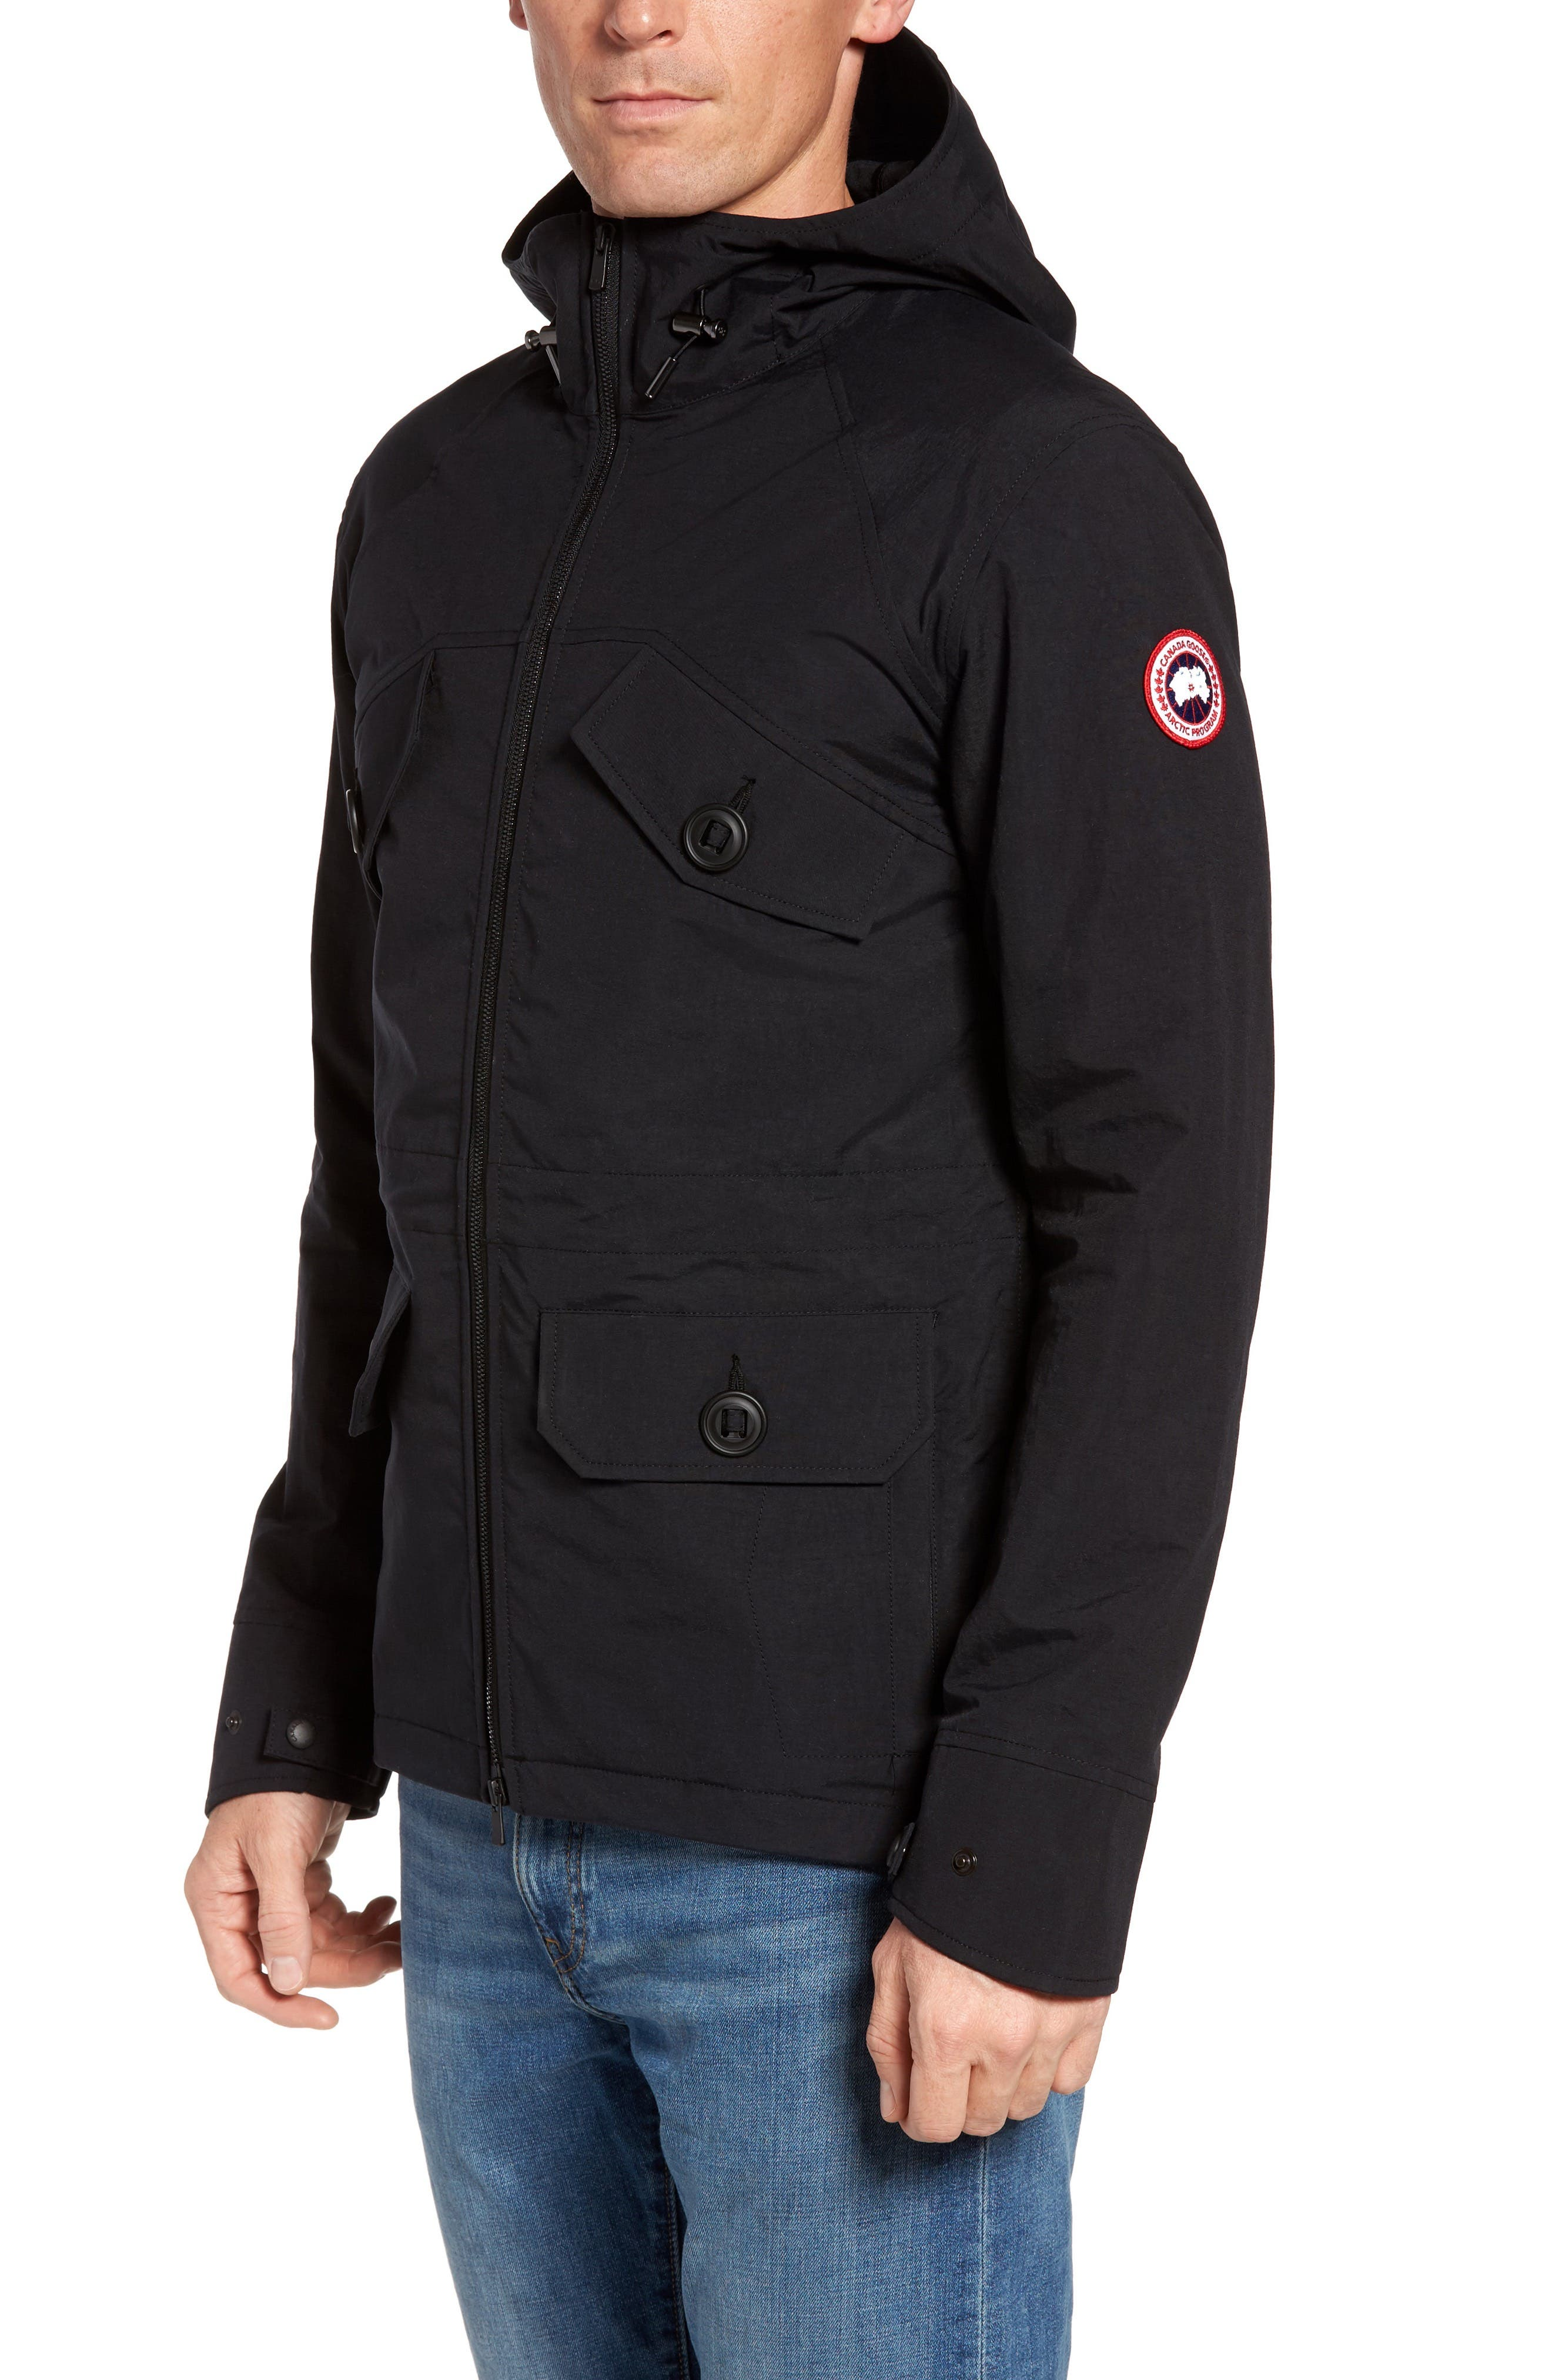 CANADA GOOSE Redstone Slim Fit Hooded Jacket, Main, color, 001